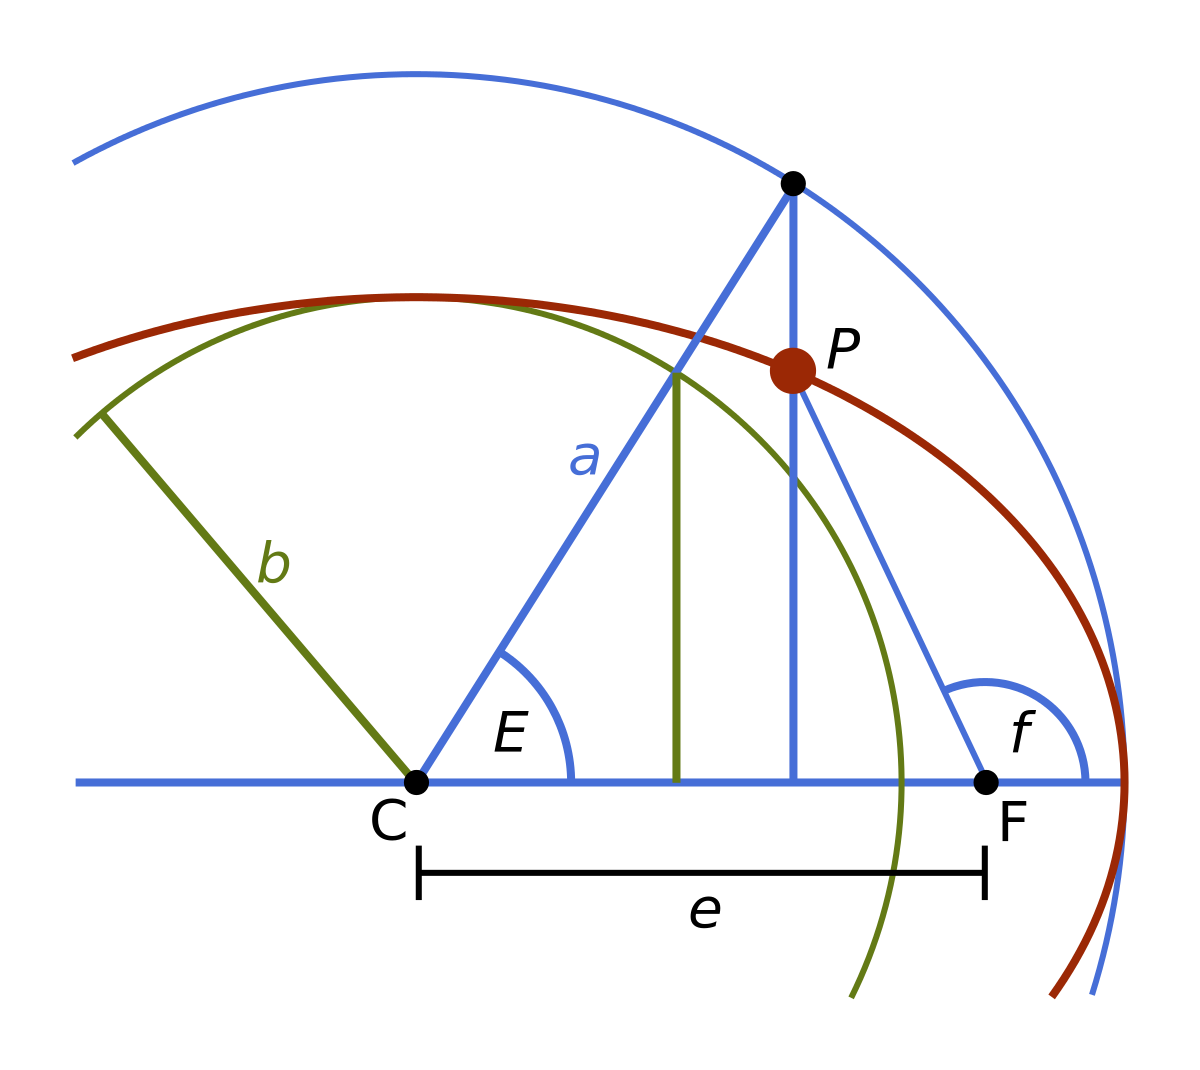 A diagram showing the basic measures for an object P on an elliptic orbit around another object in F [source].